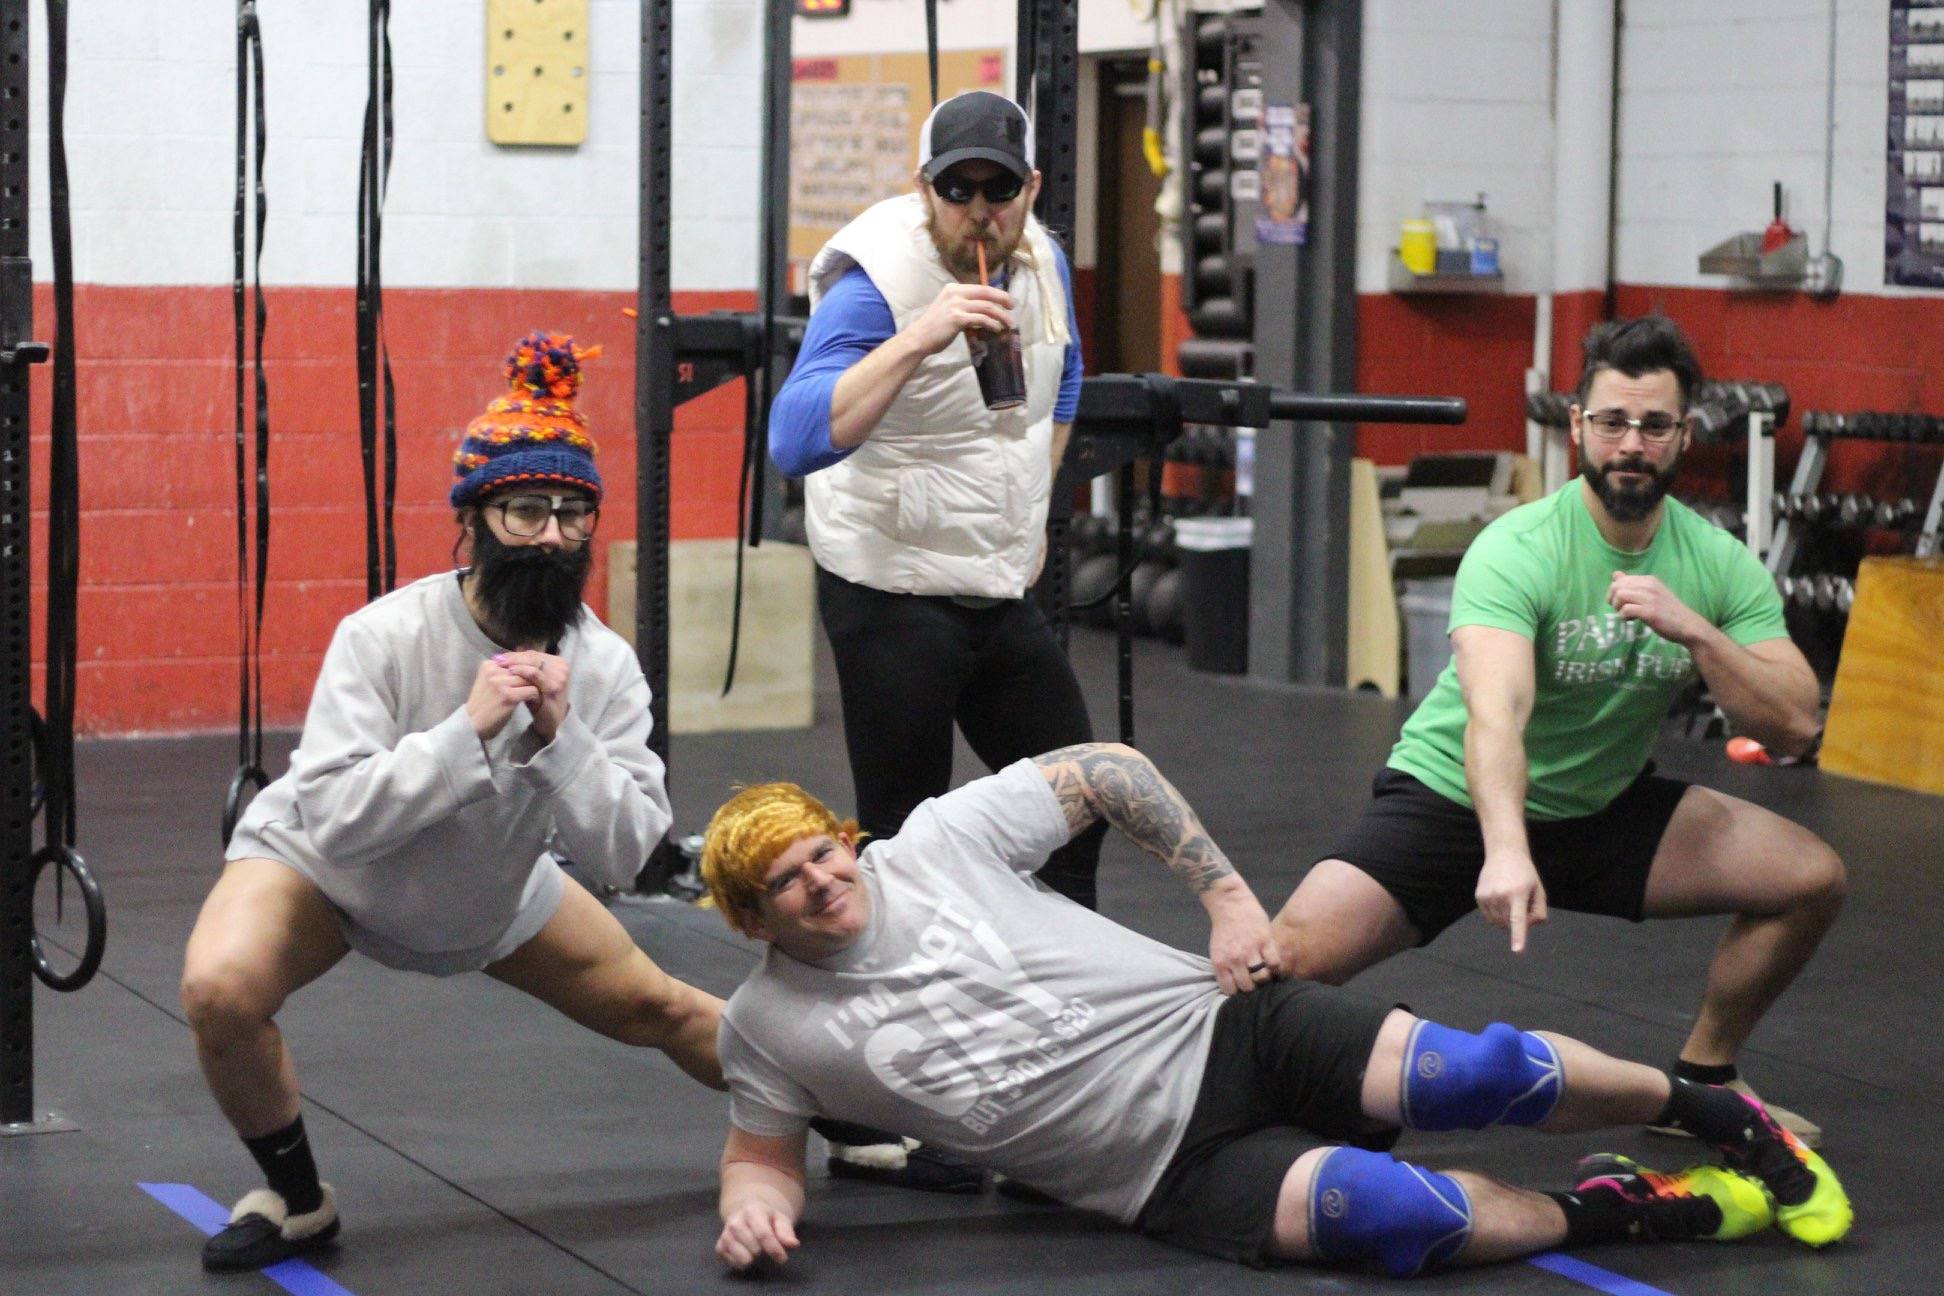 Wednesday, March 28 WOD